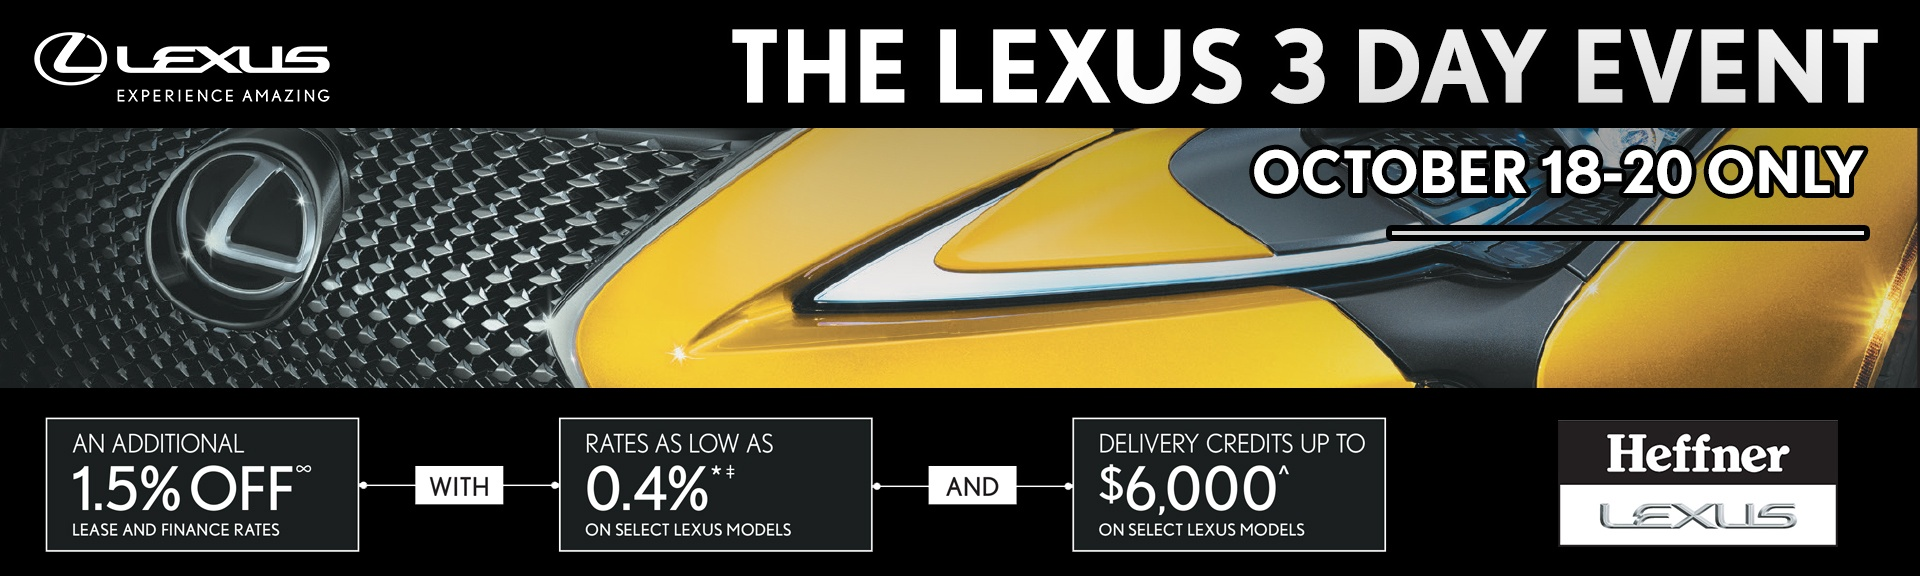 The Lexus 3 Day Event